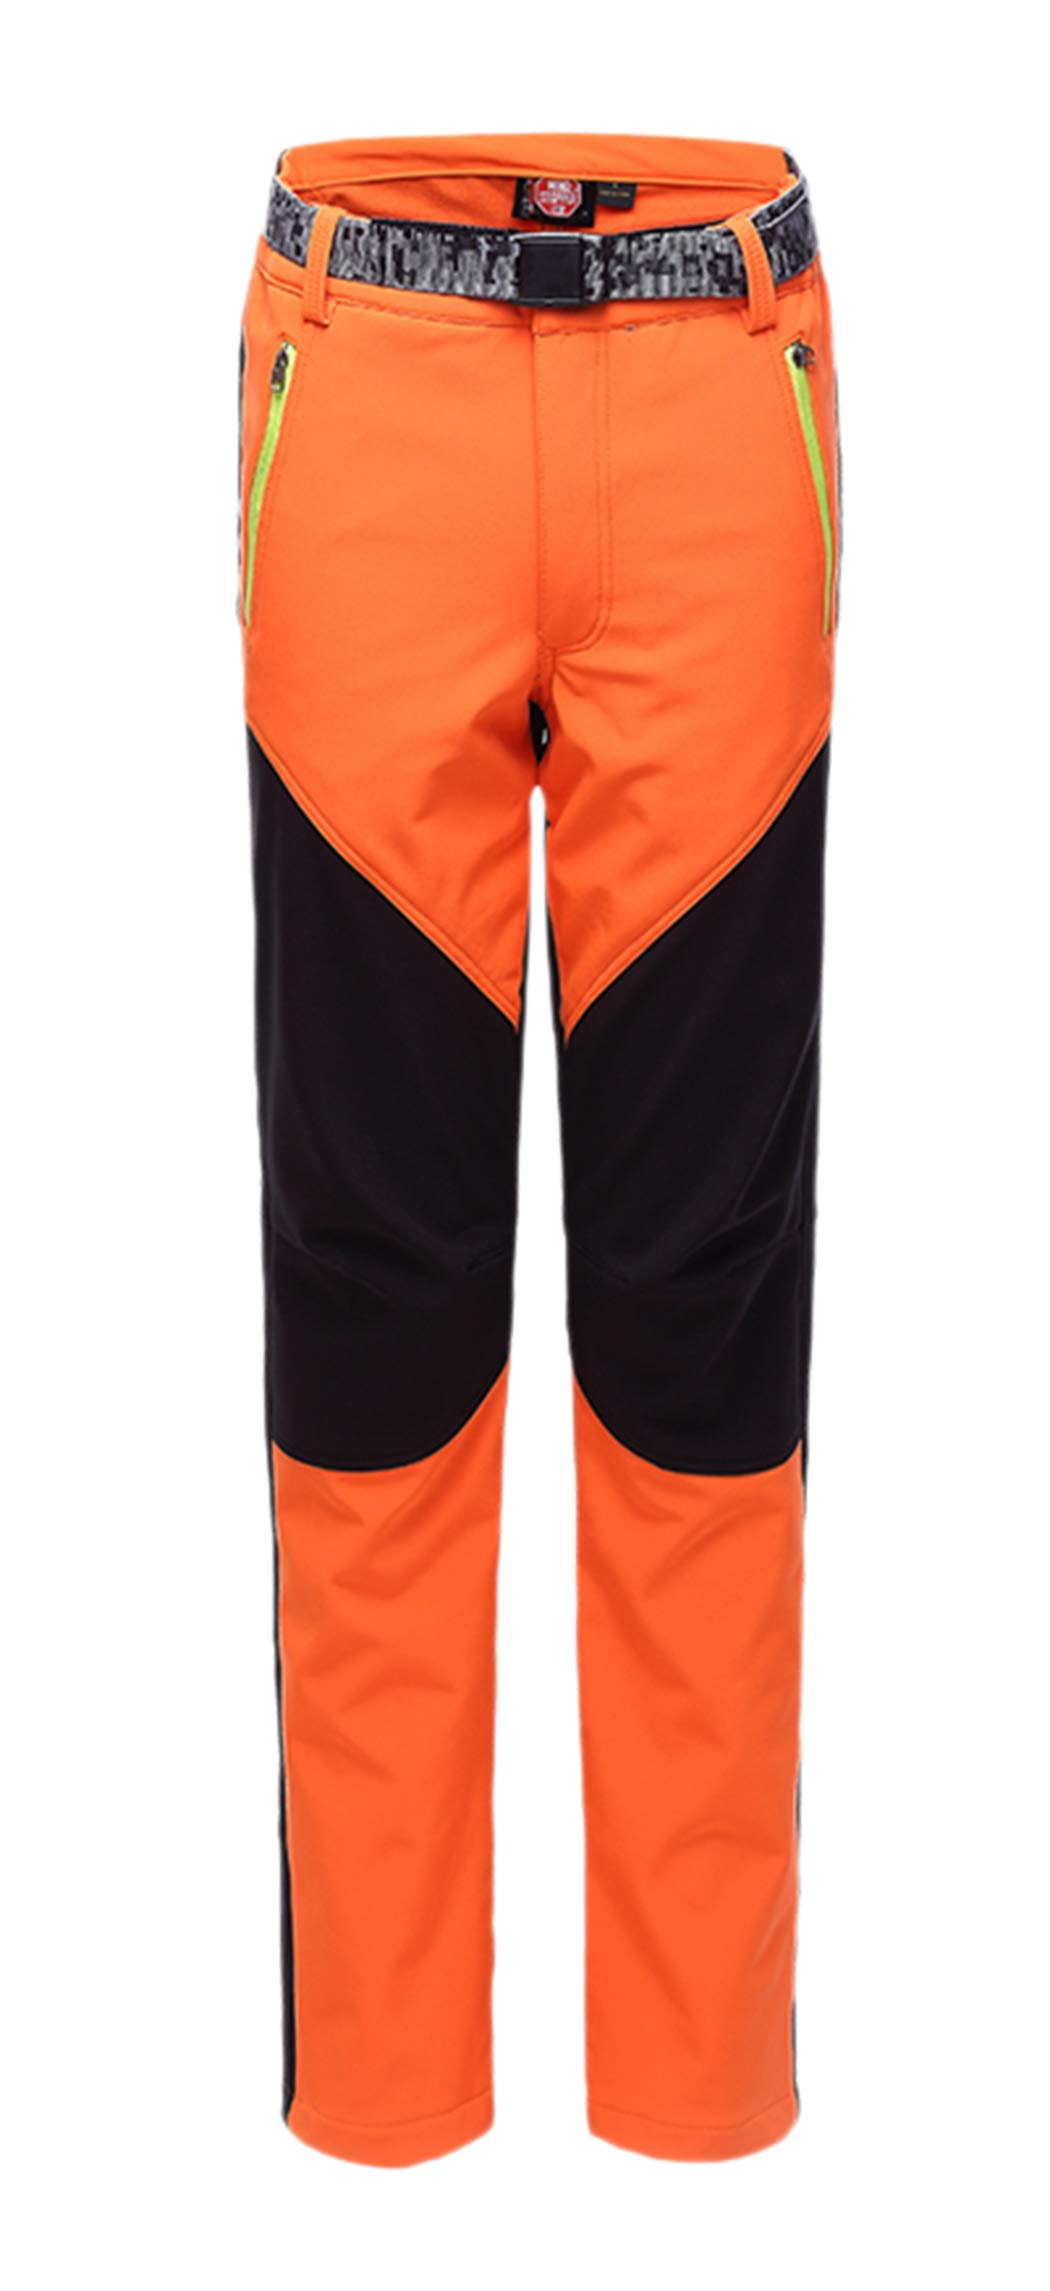 CATERTO Women's Outdoor Windproof Waterproof Softshell Fleece Snow Pants Orange L by CATERTO